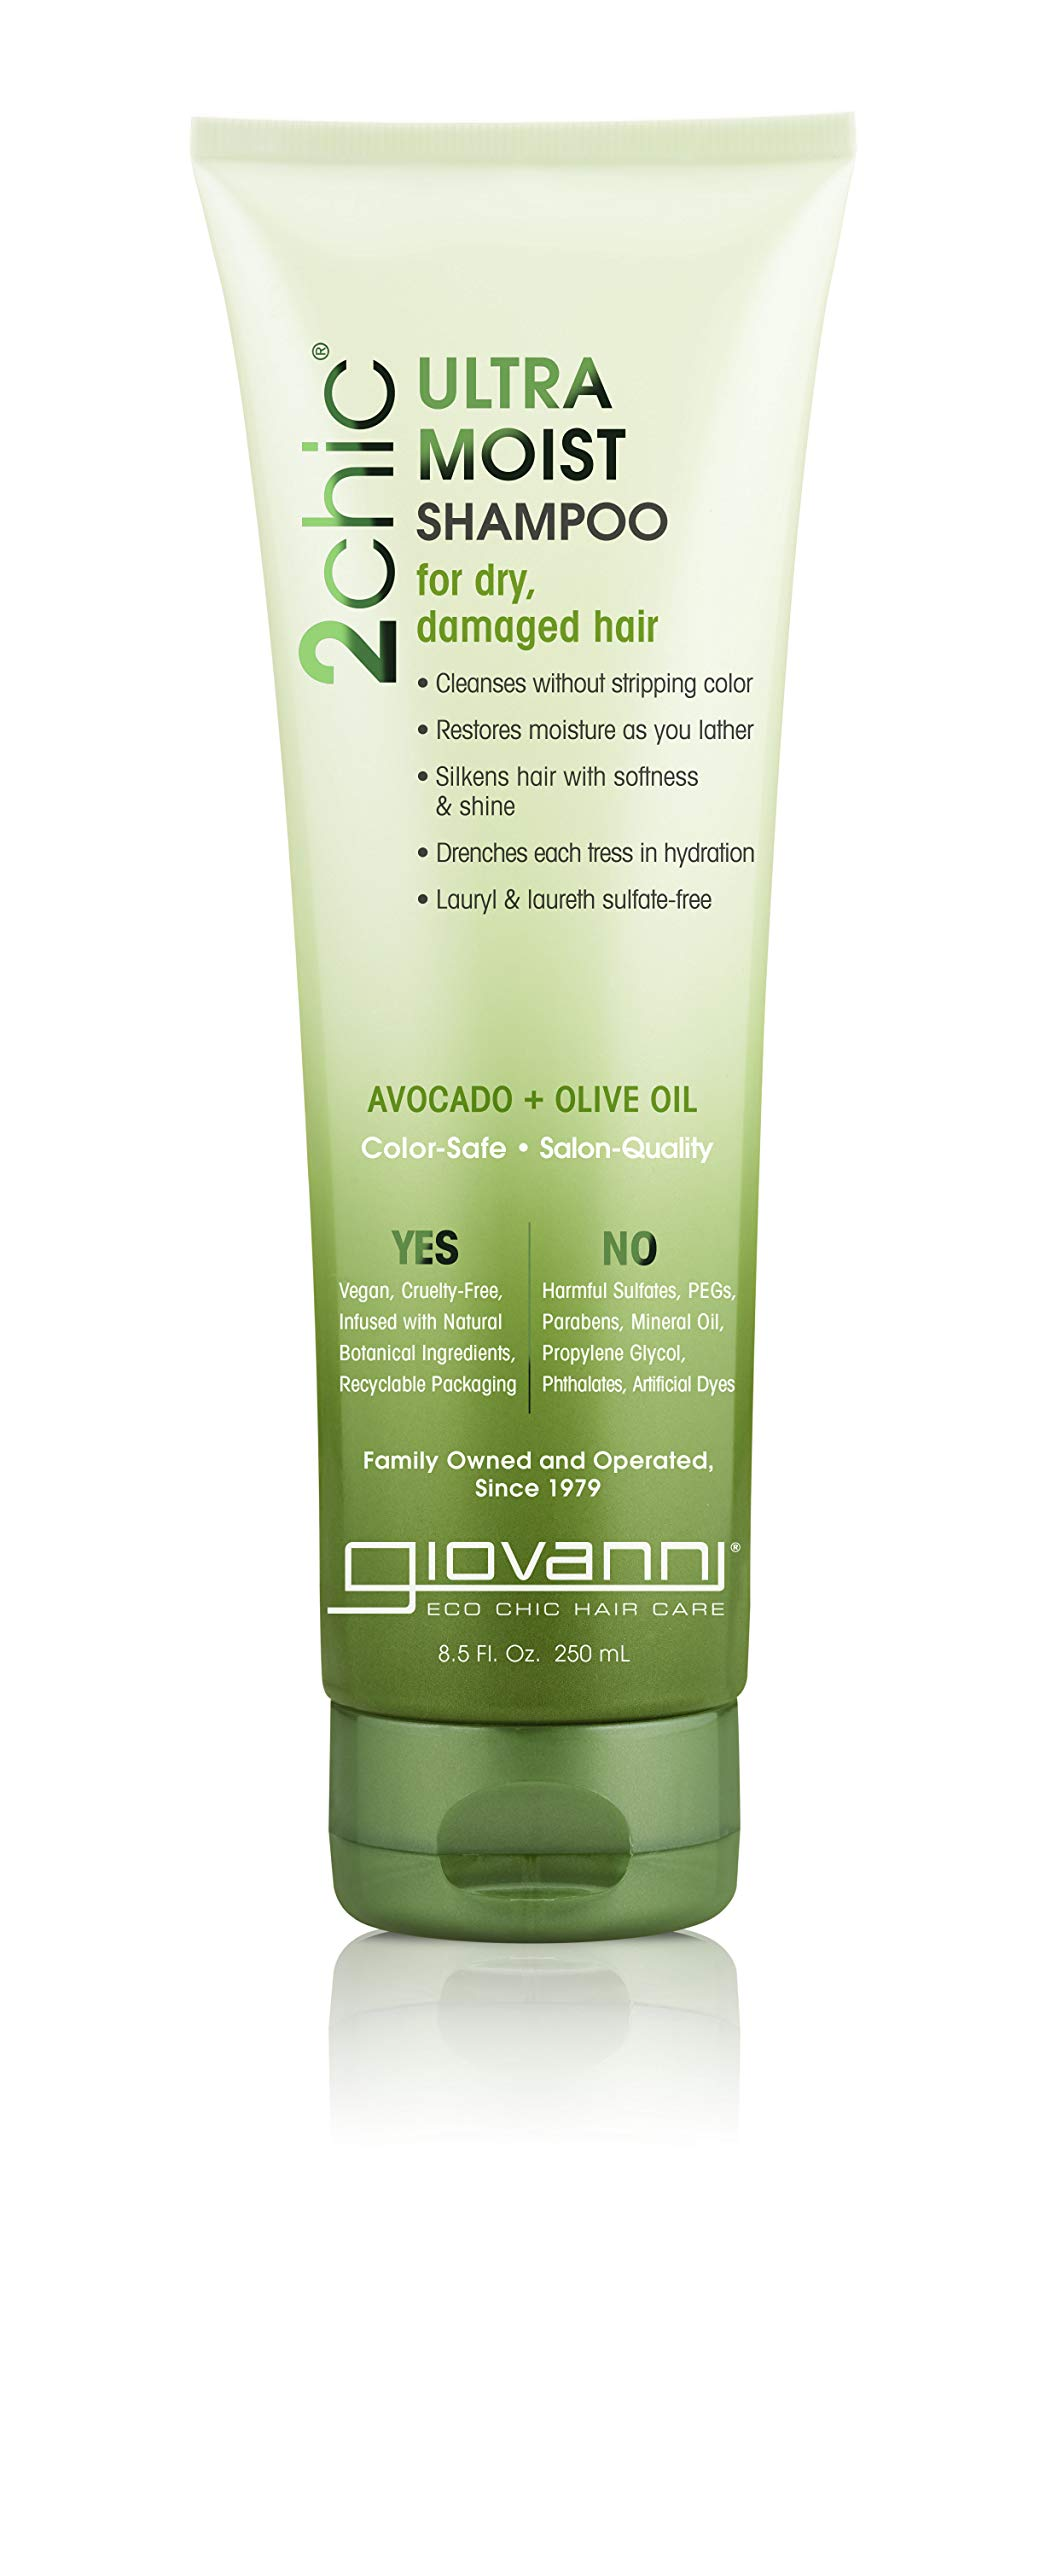 Giovanni Creamy Avocado & Olive Oil Shampoo, Hydration Powered by Aloe Vera, Shea Butter, Botanical Extract & Oils, Sulfate Free, Color Safe, 8.5 oz. (Pack of 1)